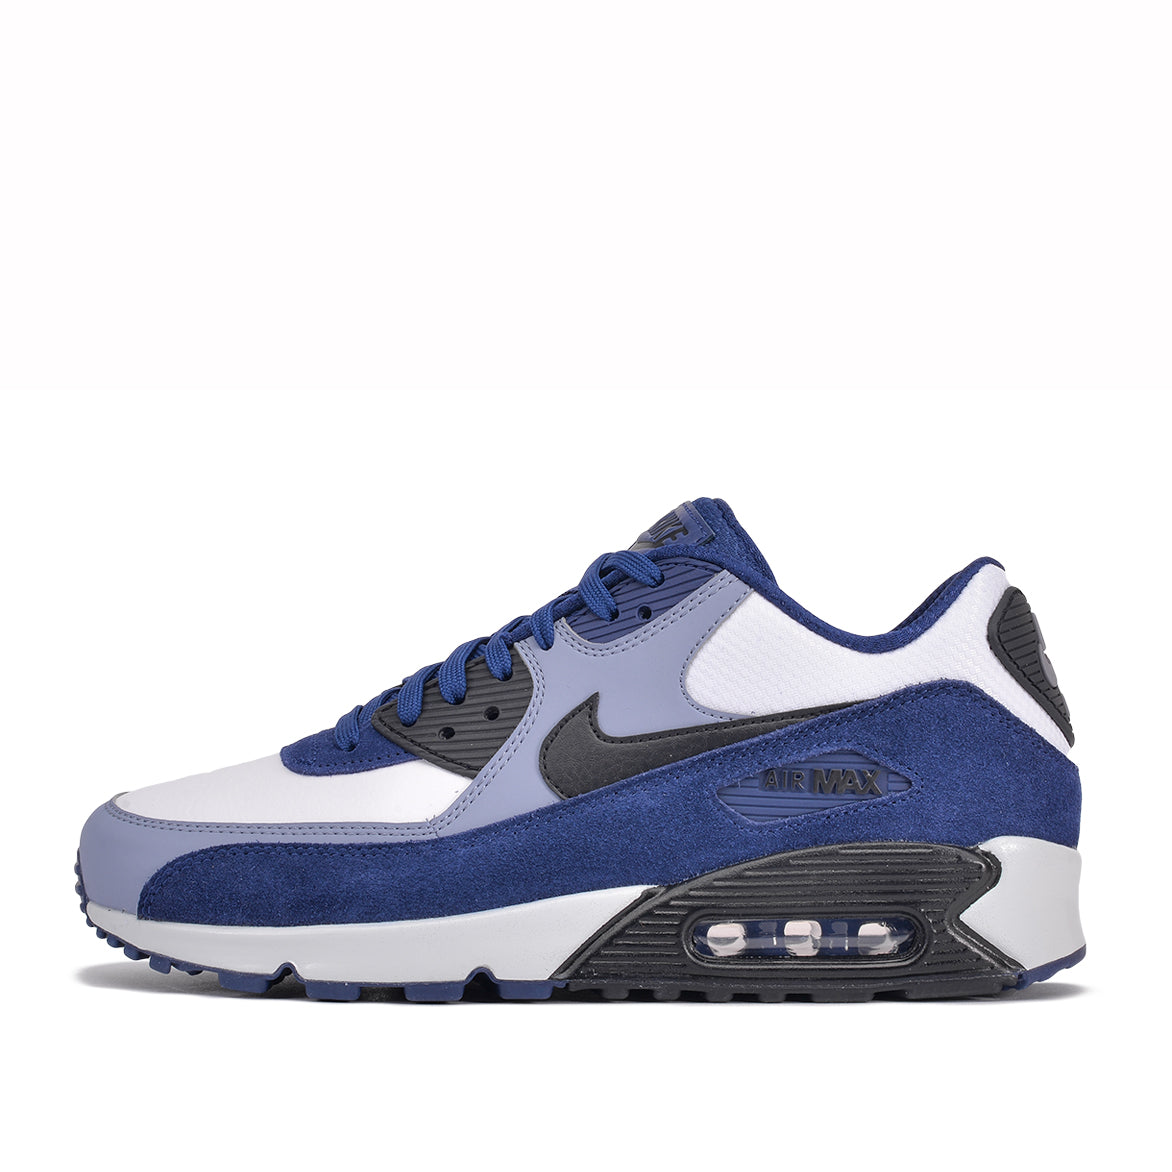 promo code d8184 2997b AIR MAX 90 LEATHER - BLUE VOID / ASHEN SLATE